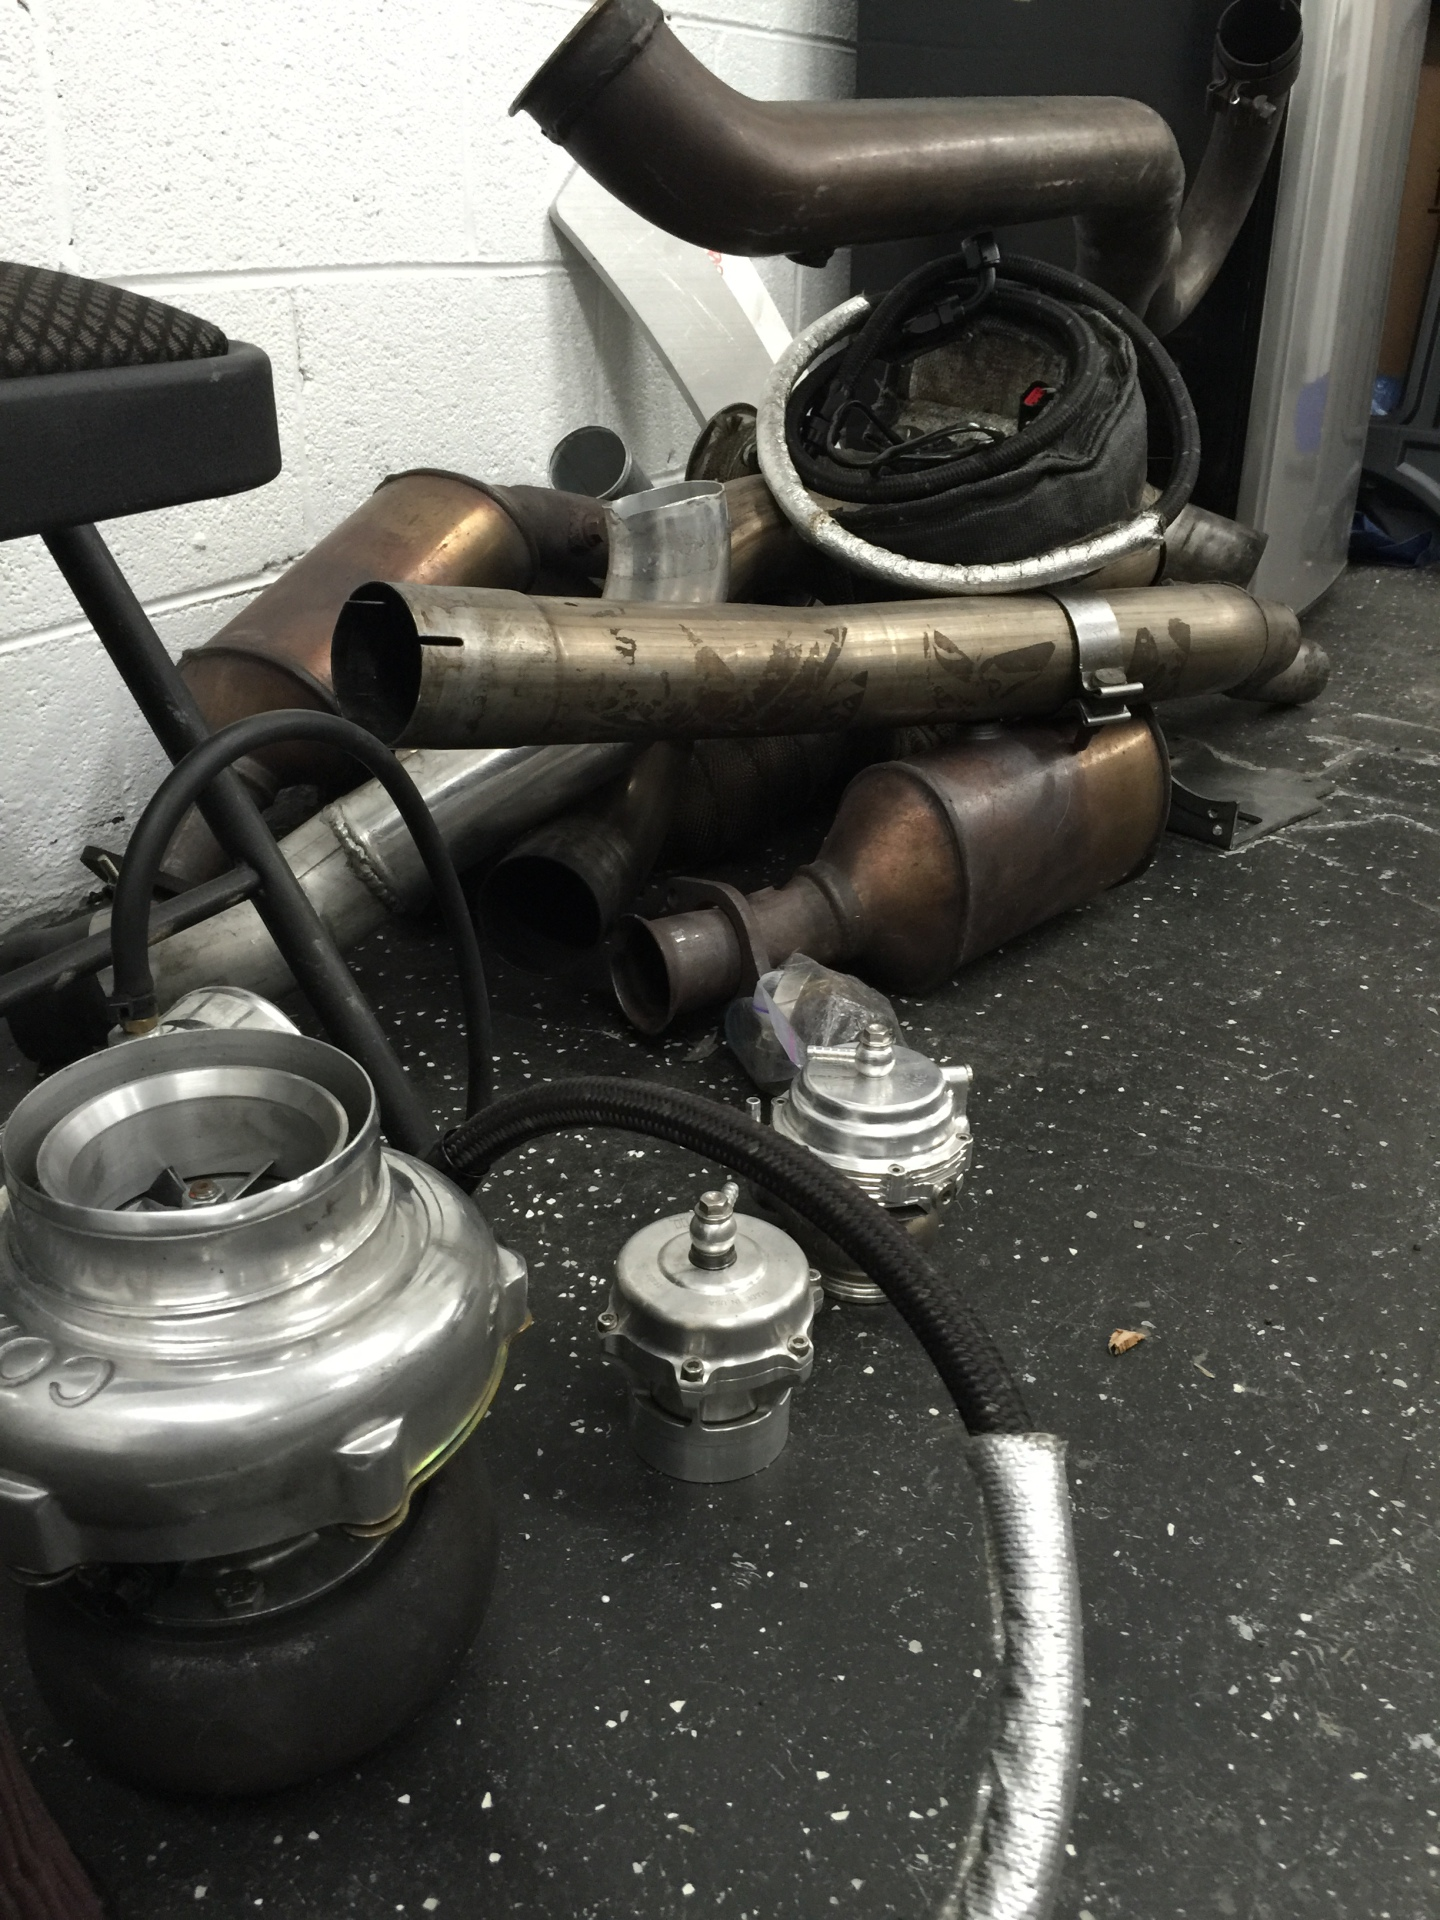 Turbo kit for a 2010 4.6 mustang.